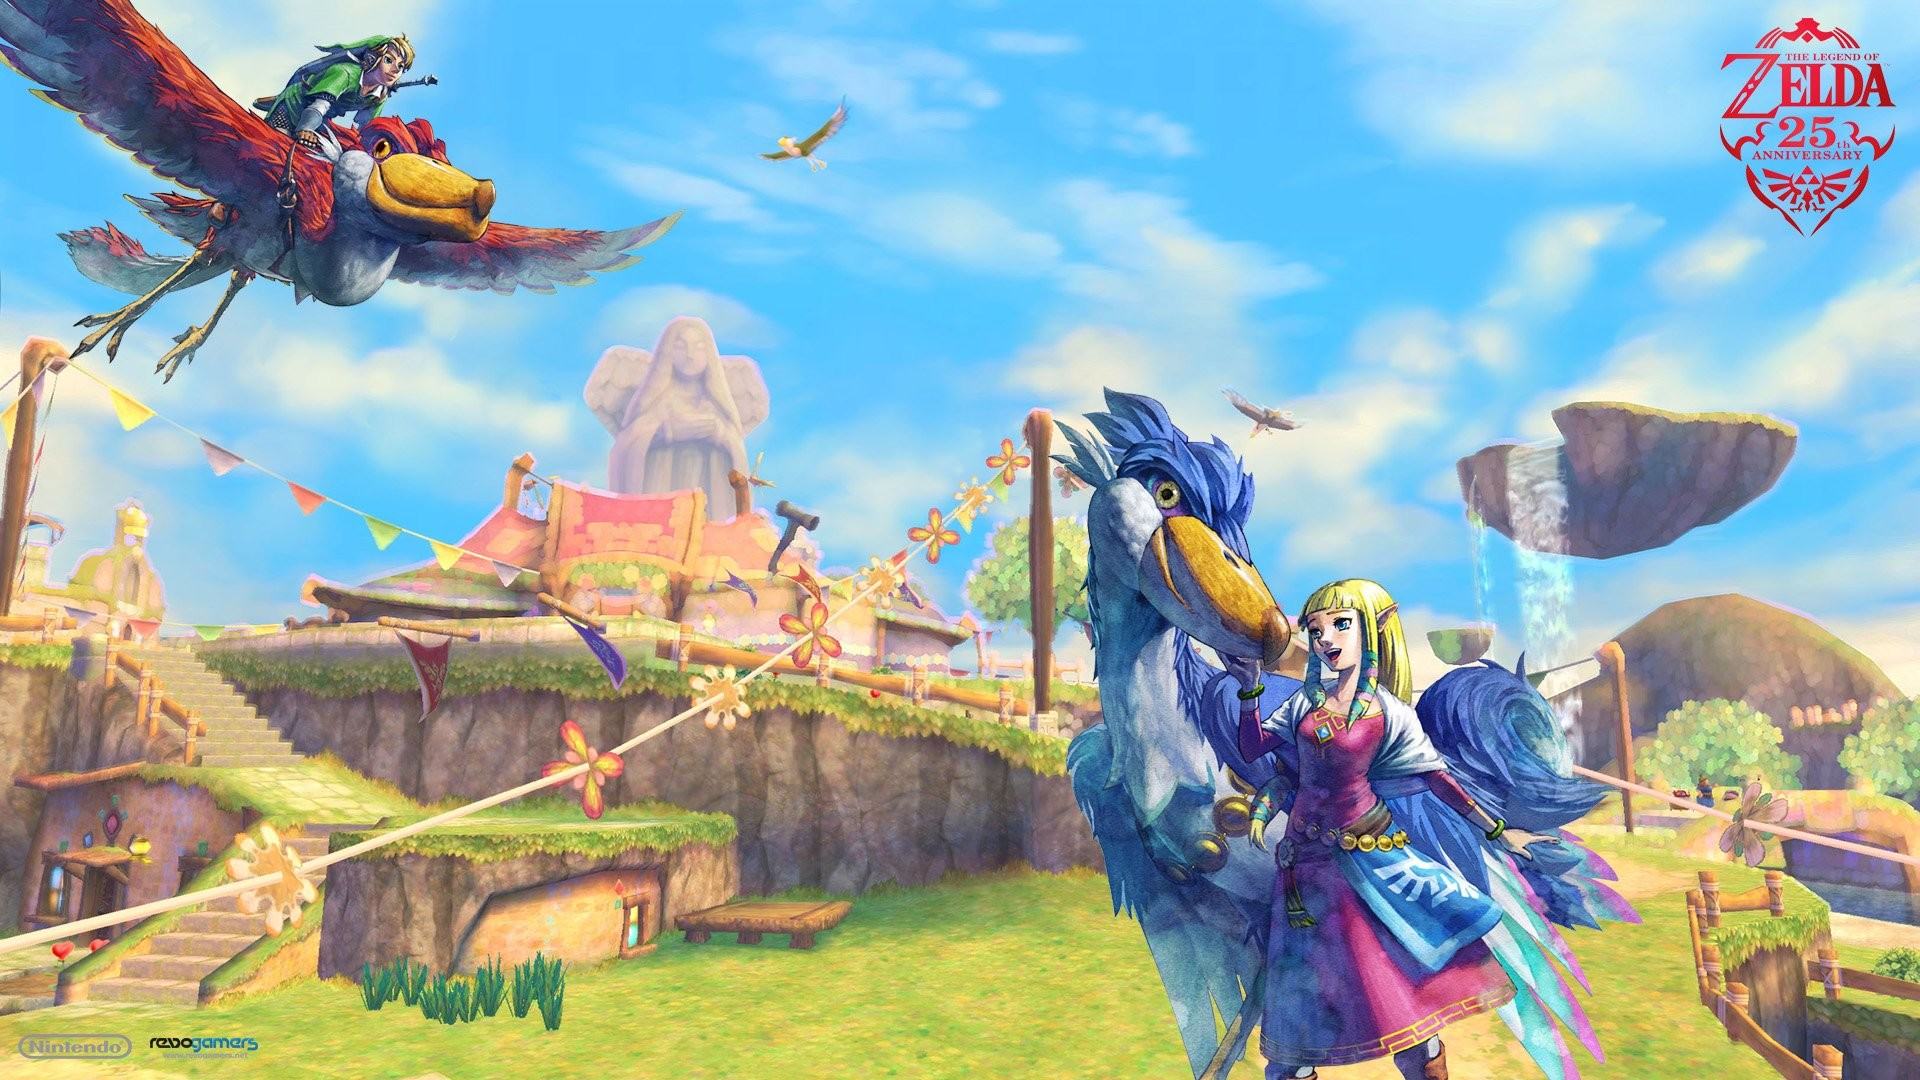 1920x1080 The Legend Of Zelda Skyward Sword Wallpaper